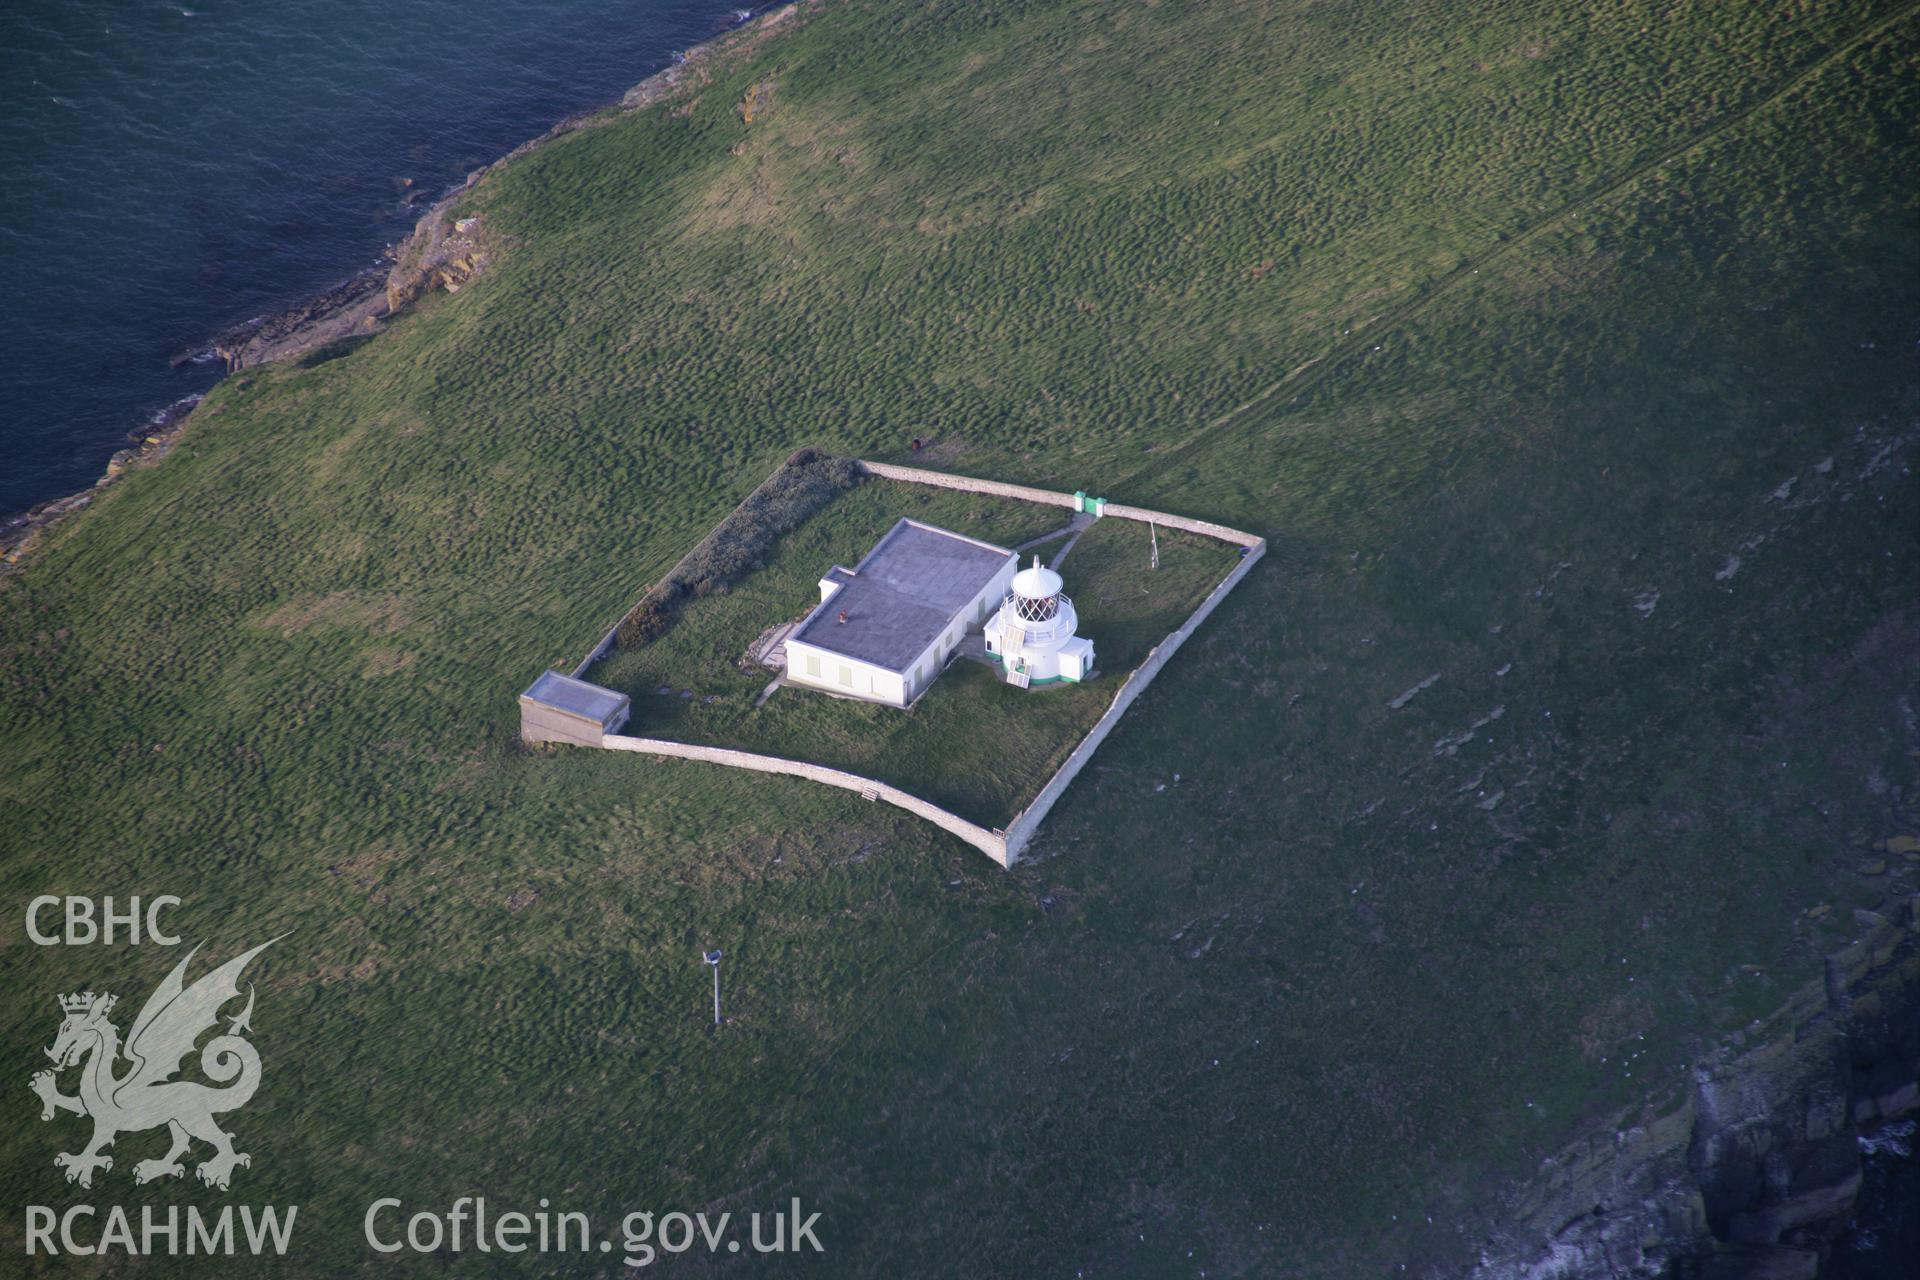 RCAHMW colour oblique aerial photograph of St Tudwall's Lighthouse from the south-east. Taken on 09 February 2006 by Toby Driver.